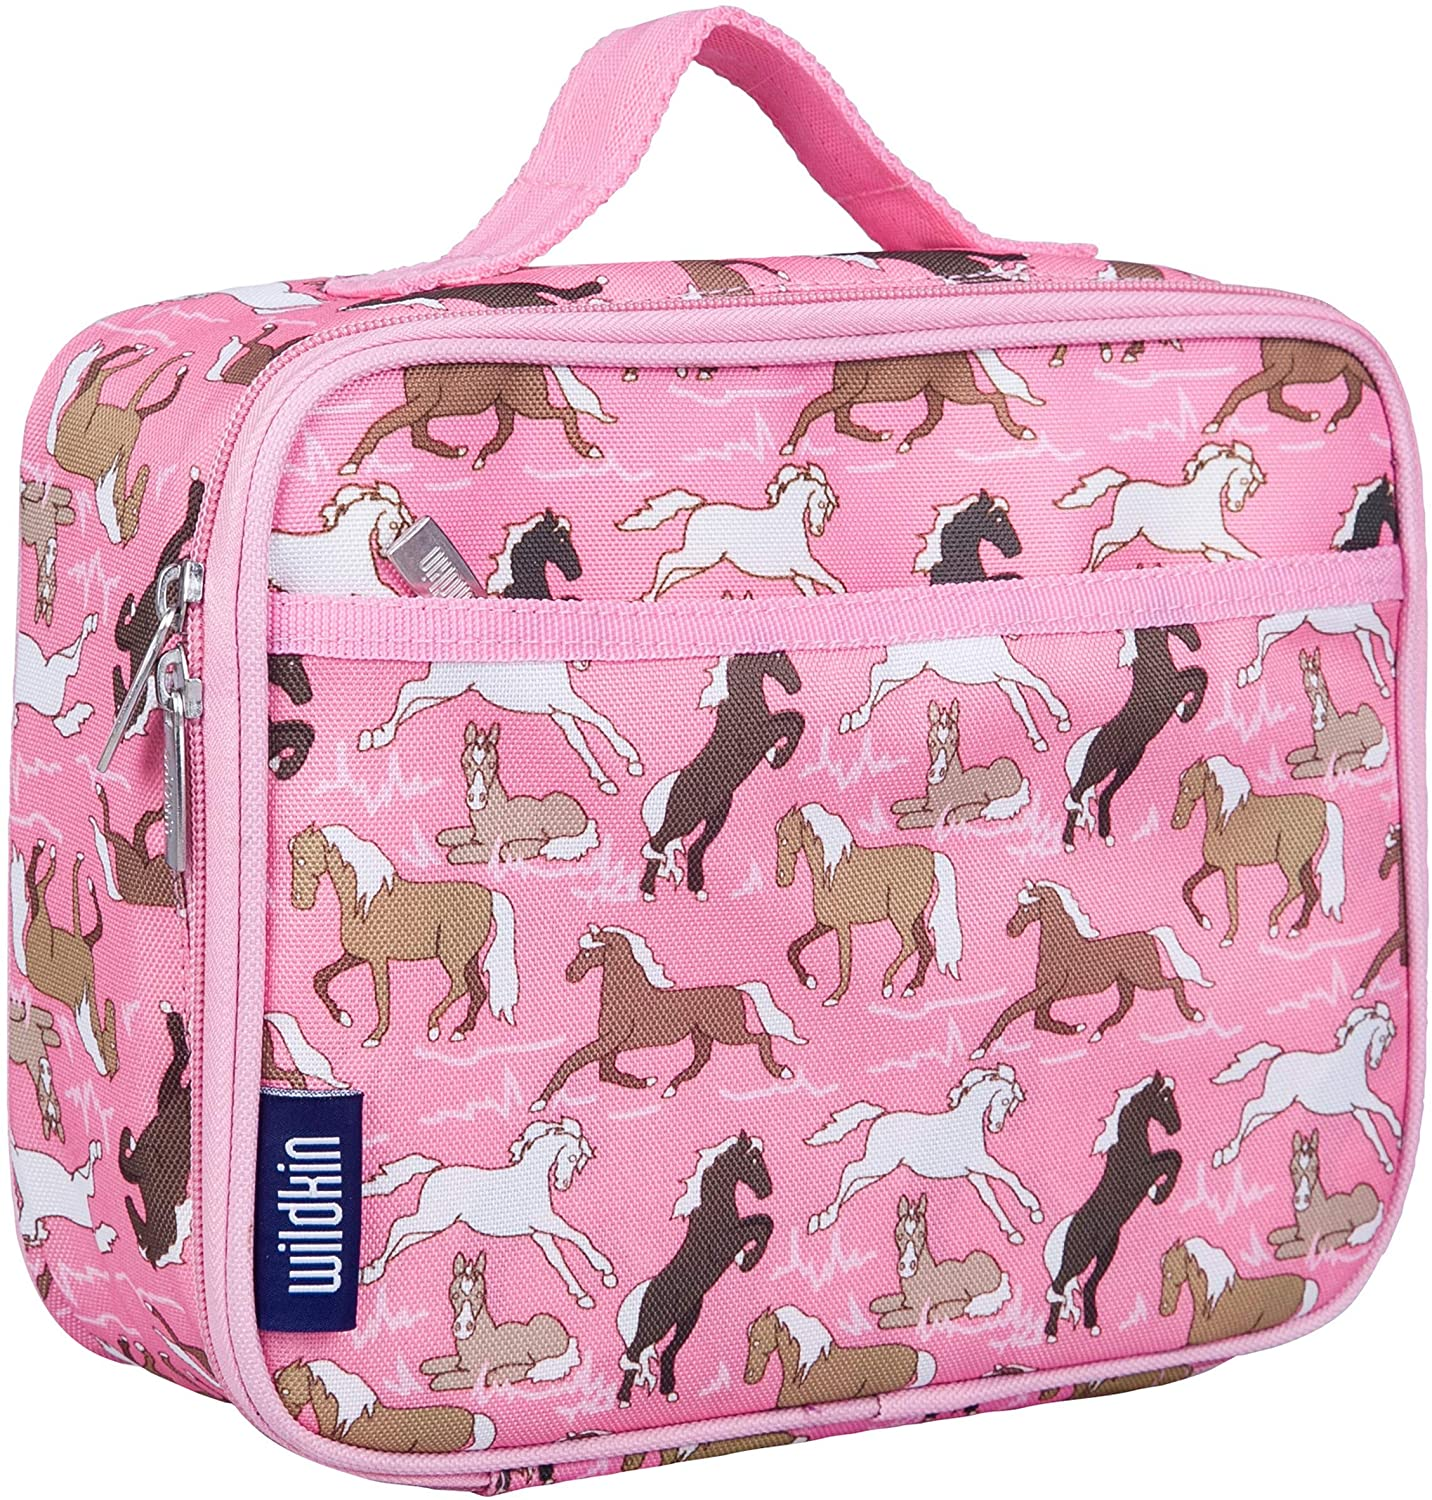 Wildkin Kids Insulated Lunch Box Bag for Boys and Girls, Perfect Size for Packing Hot or Cold Snacks for School and Travel, Mom's Choice Award Winner, BPA-free, Olive Kids (Horses in Pink)